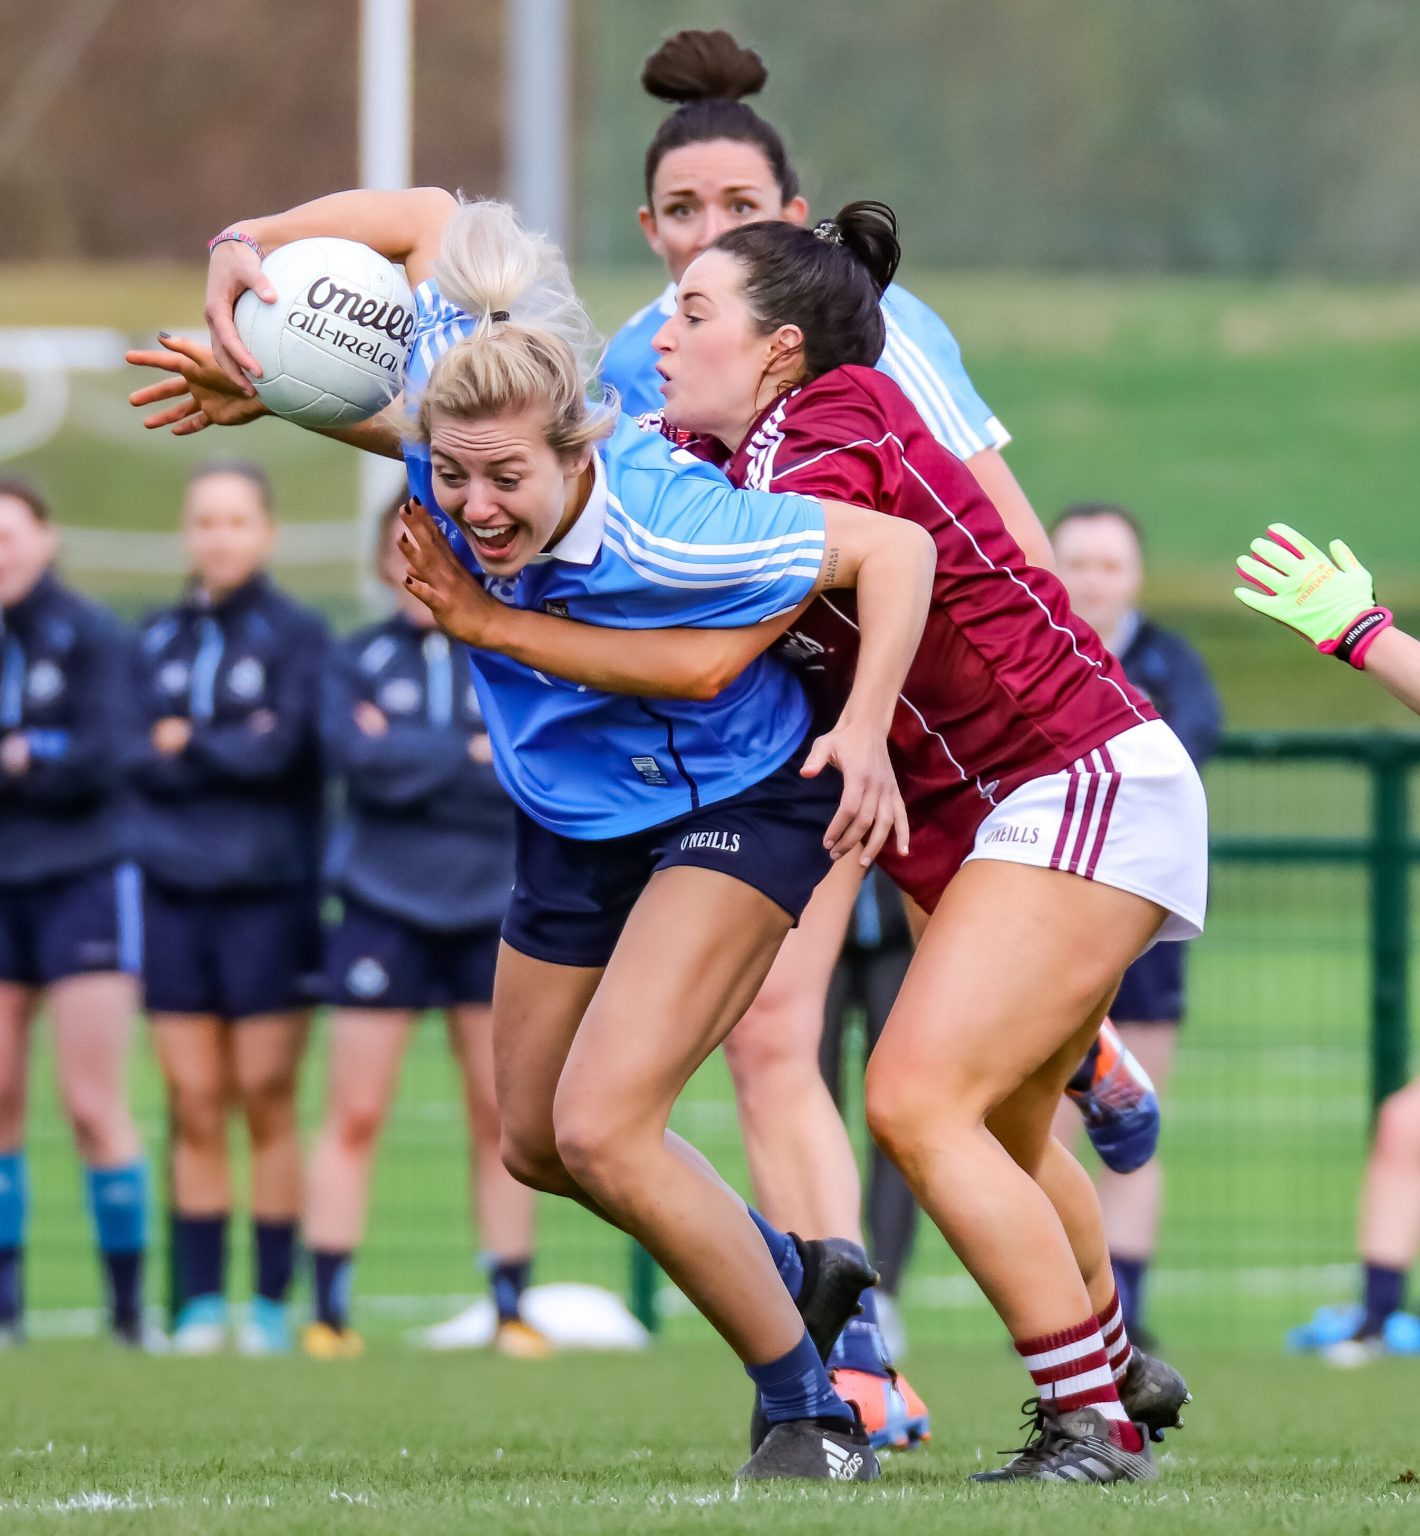 Times And Venues Announced For Dublin's Lidl NFL League Semi Final Against Galway